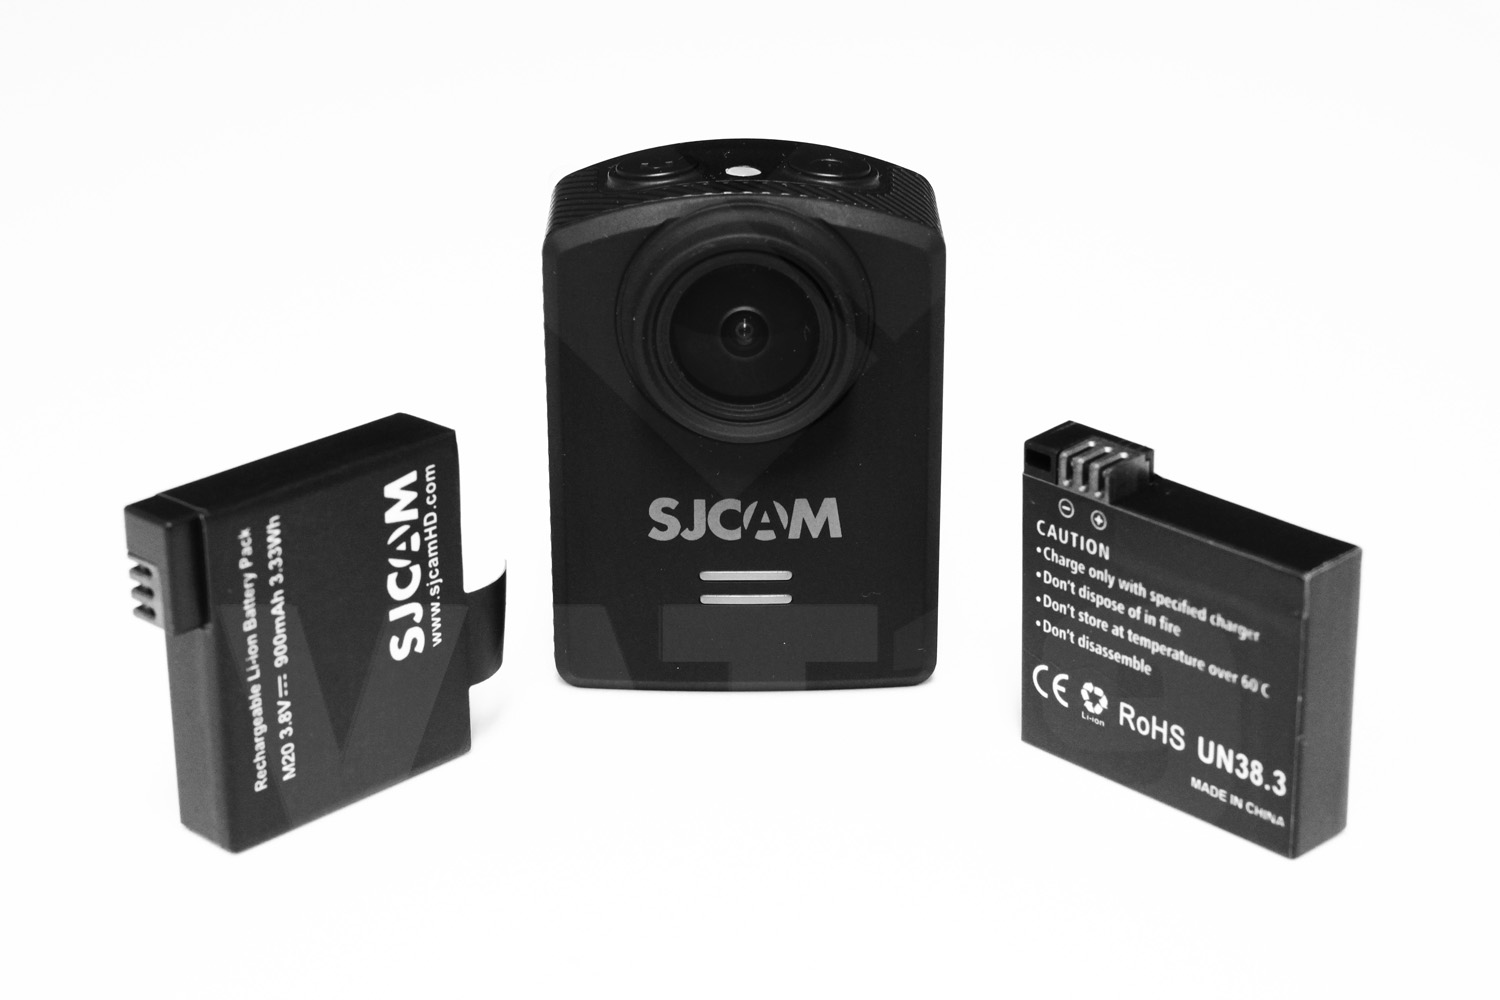 Bateria do SJCAM M20 vat19.pl